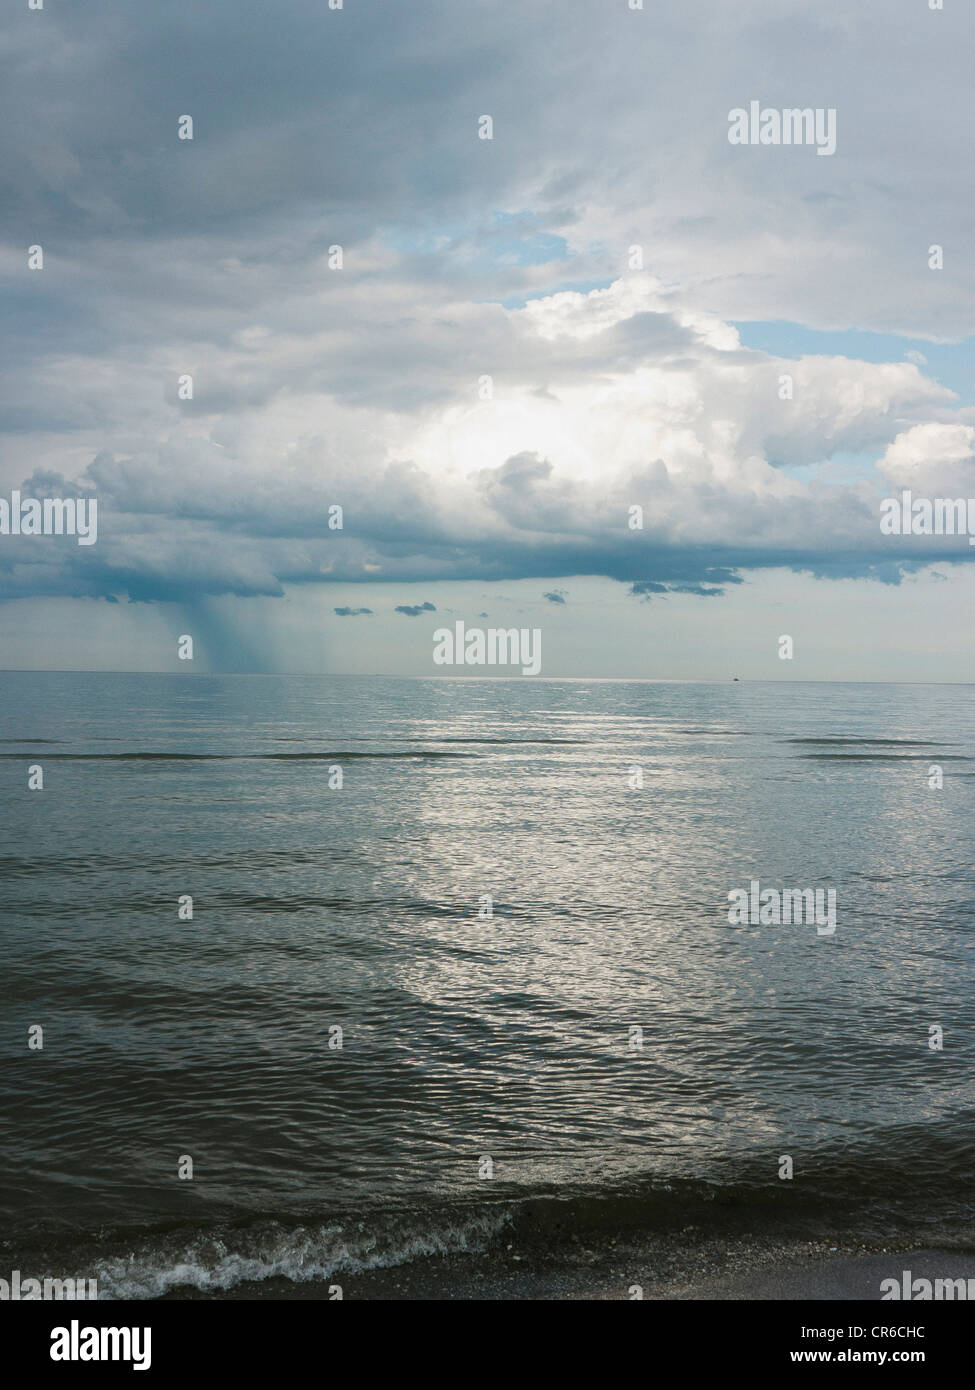 Germany, View of cloudy sky over Baltic Sea at Rugen Island Stock Photo